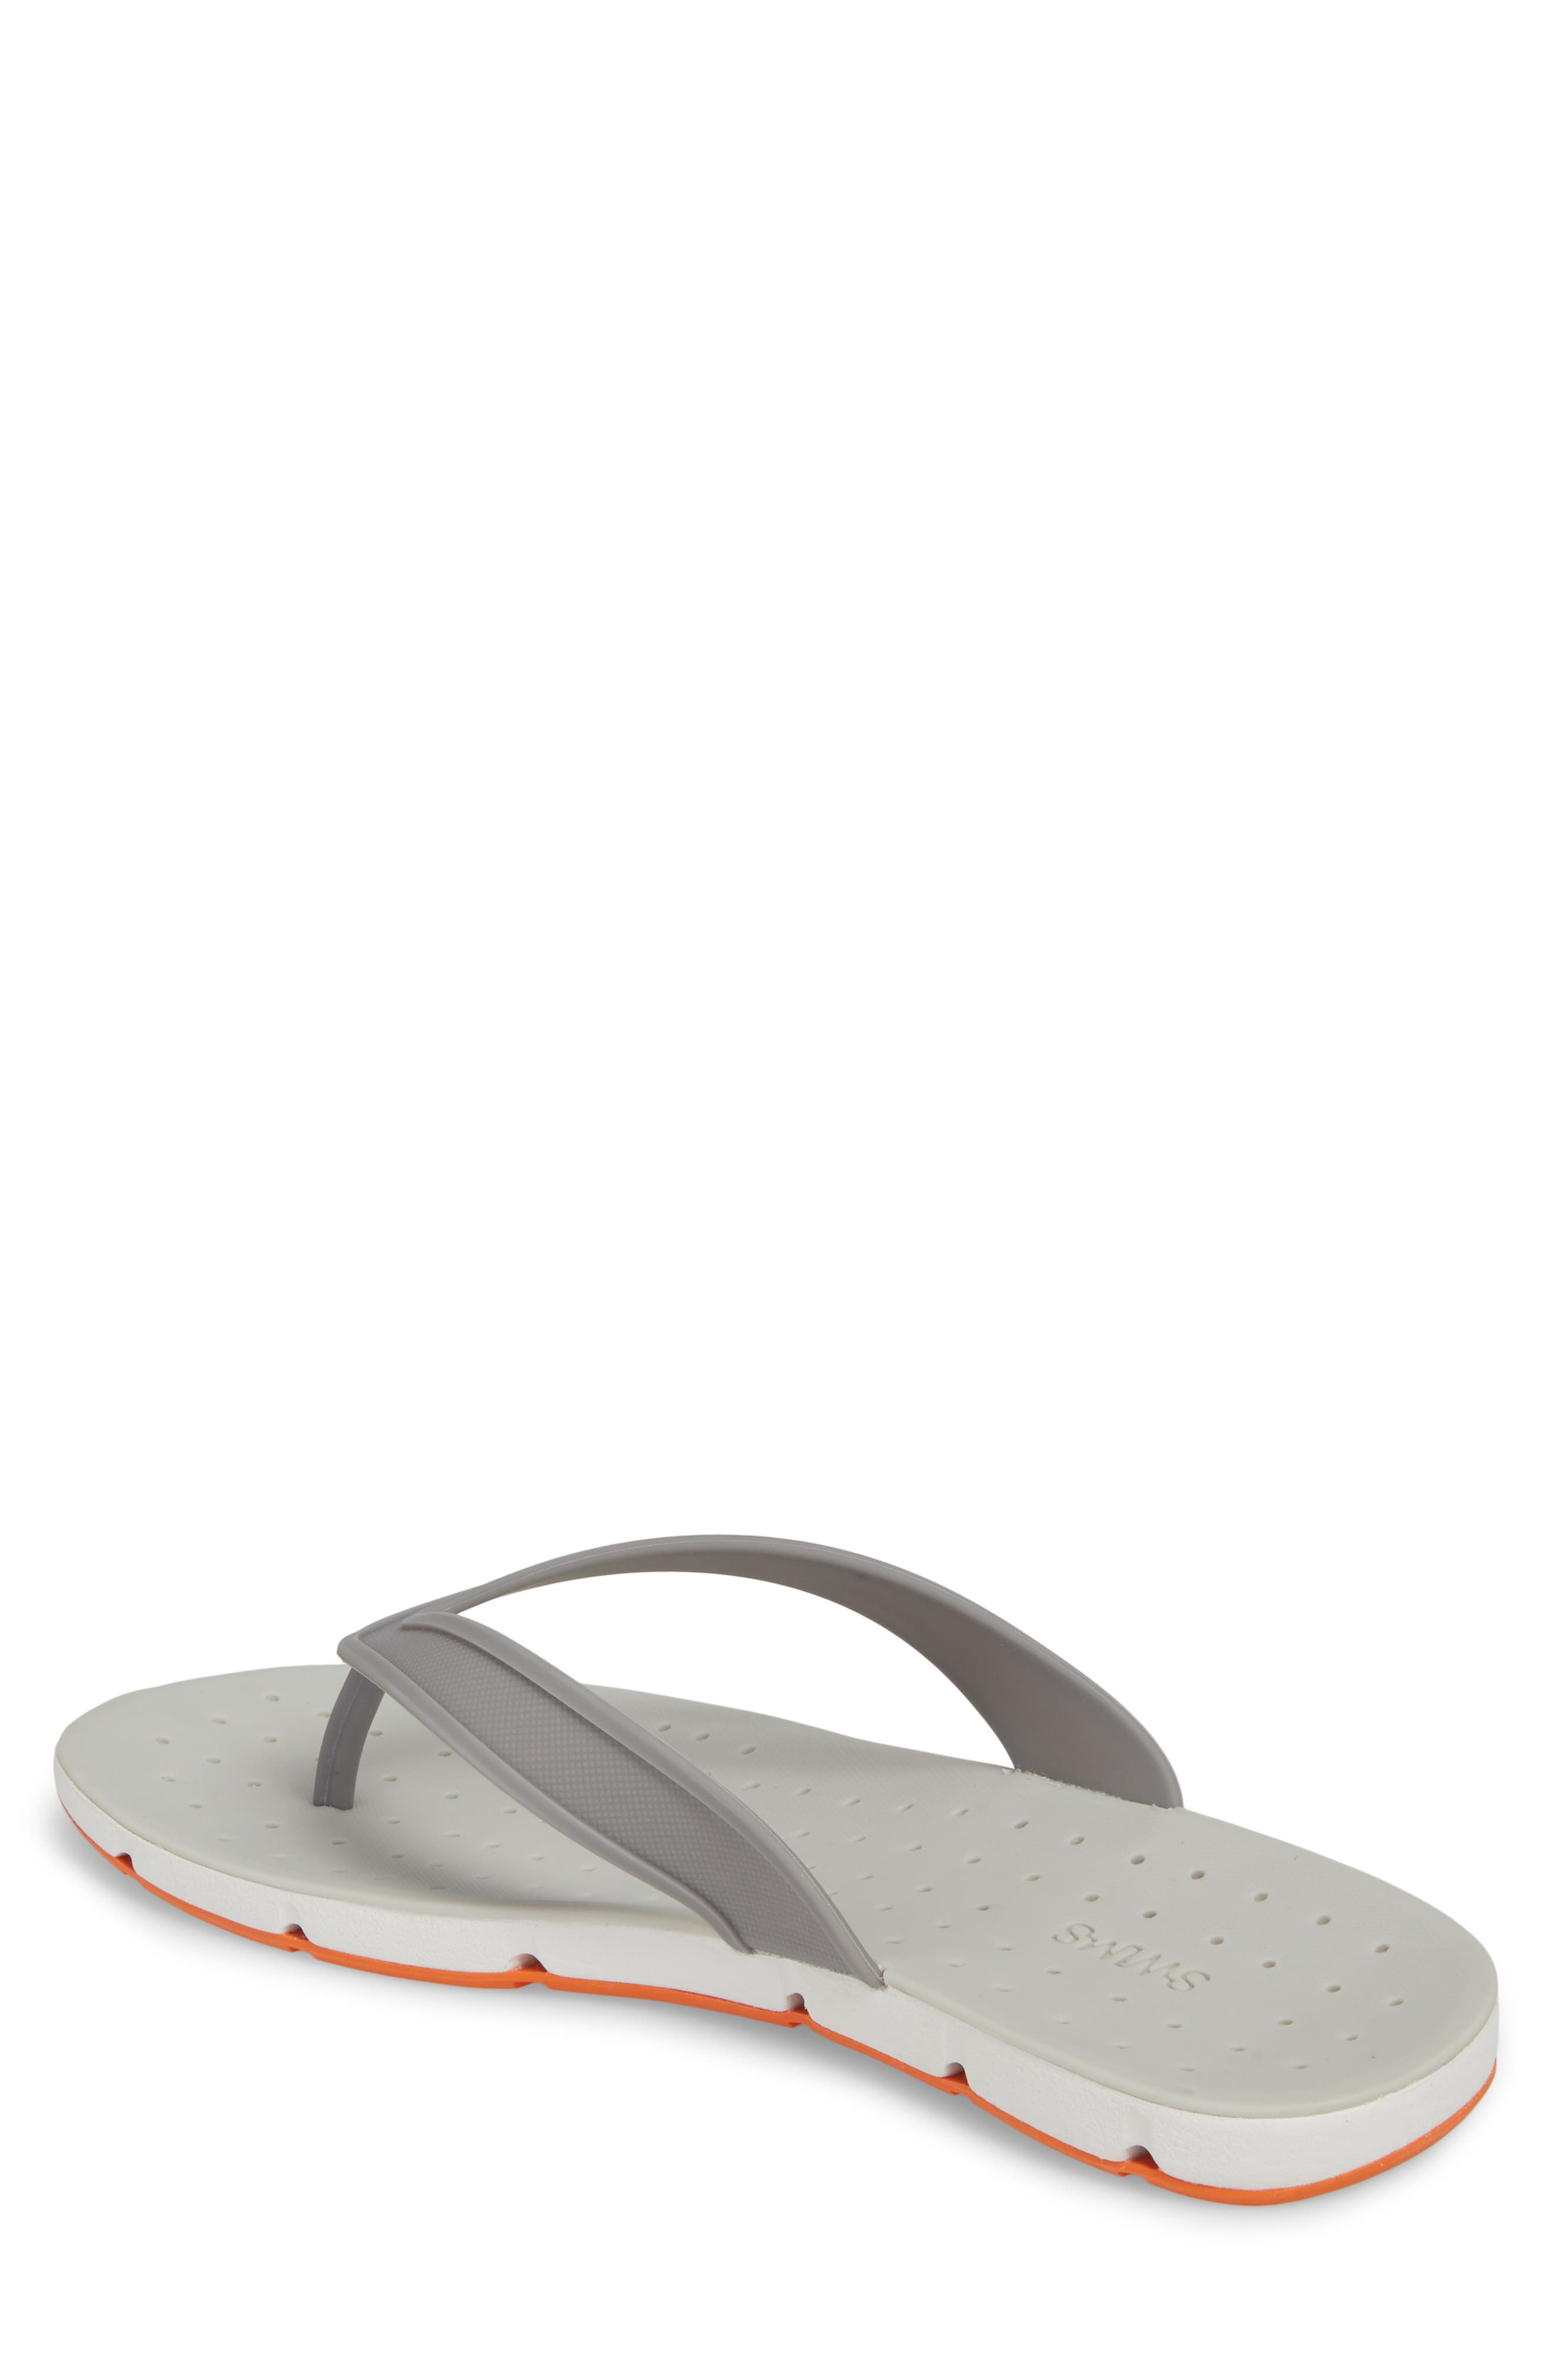 Breeze Flip Flop,                             Alternate thumbnail 2, color,                             GRAY / WHITE / ORANGE